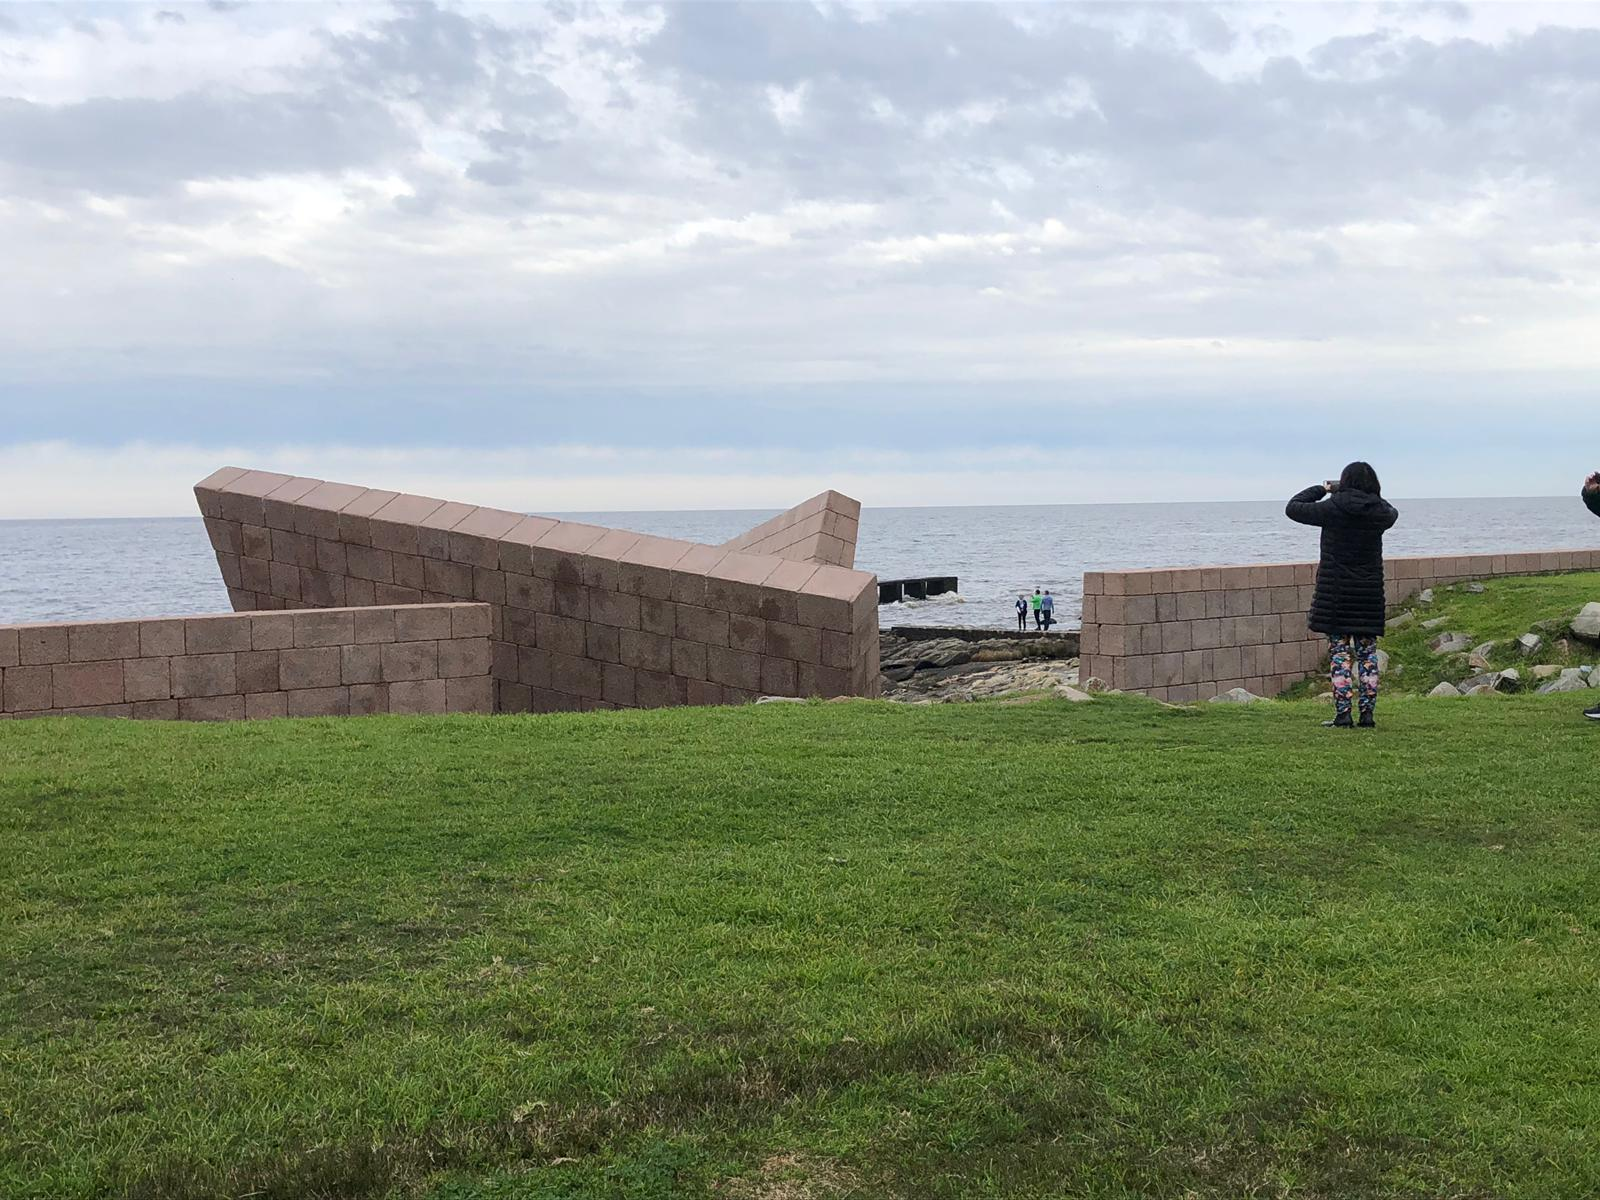 Holocaust Memorial by the Sea